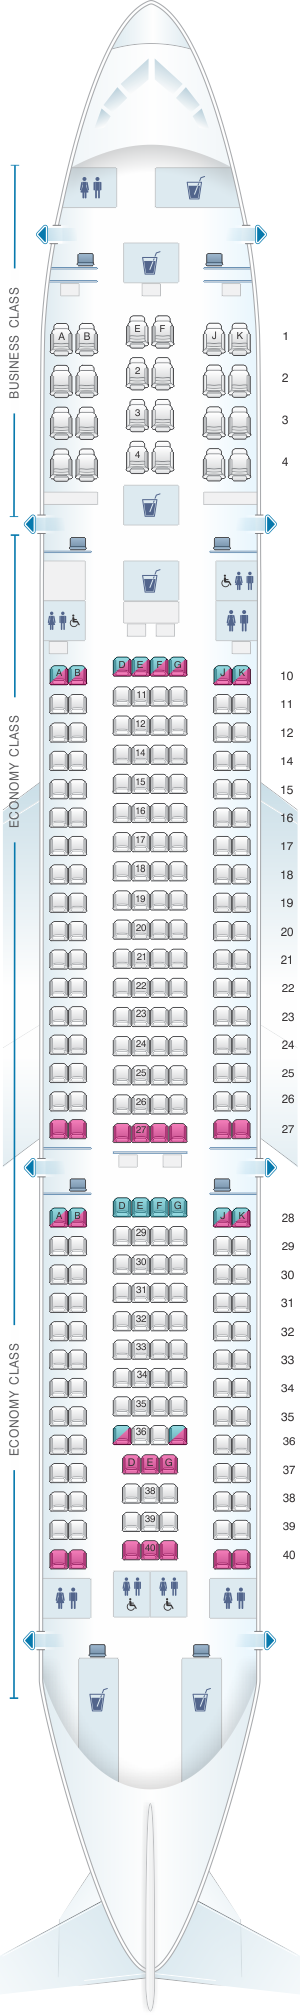 Seat map for Qatar Airways Airbus A330 200 260pax